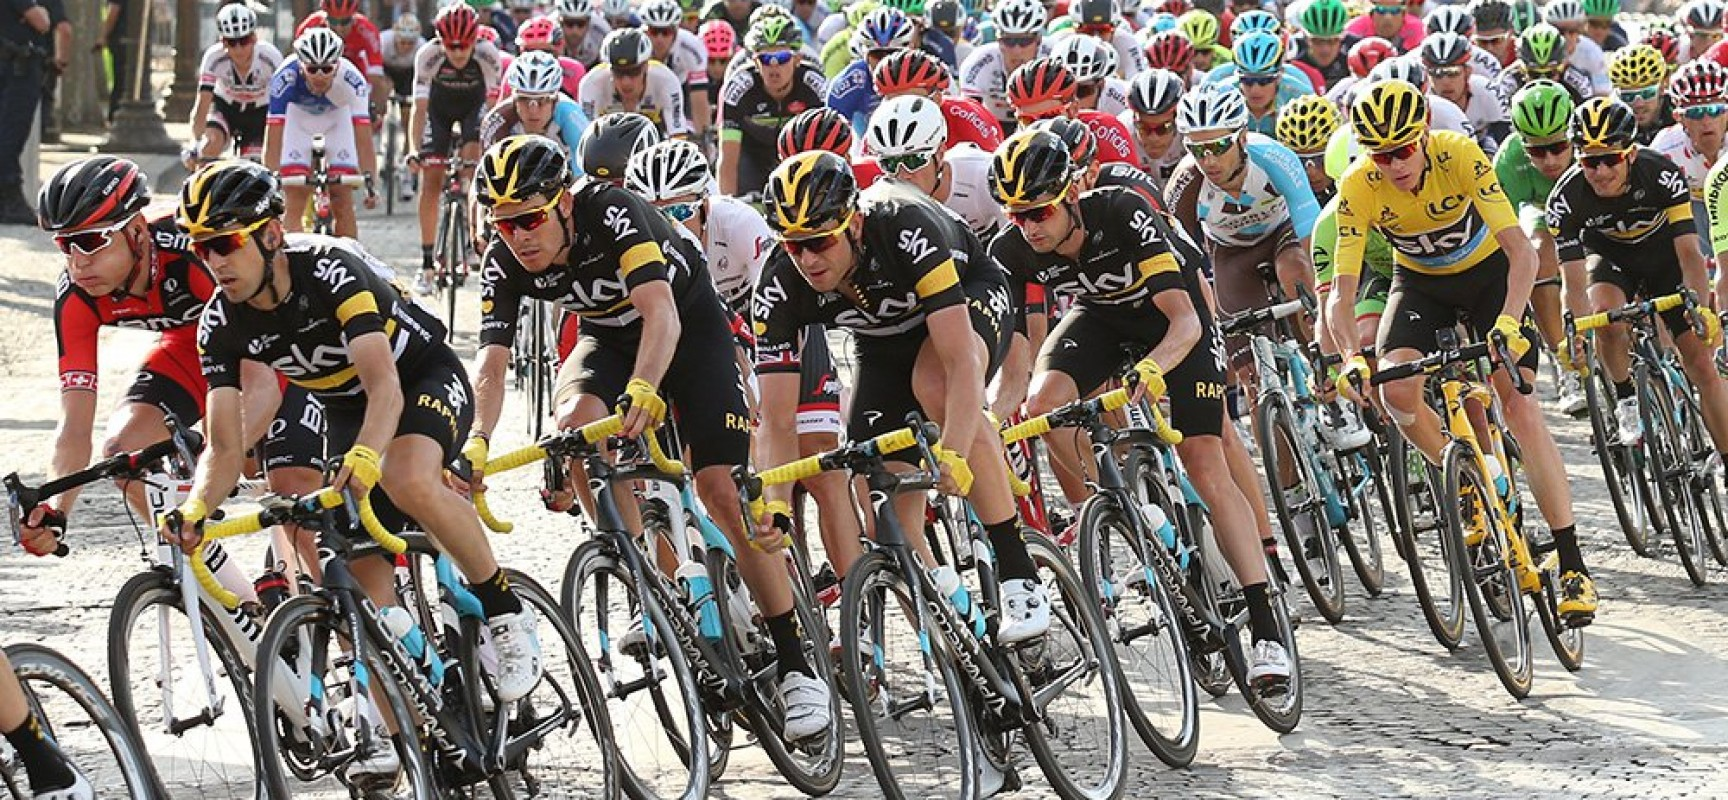 Keep in Time with the Tour de France